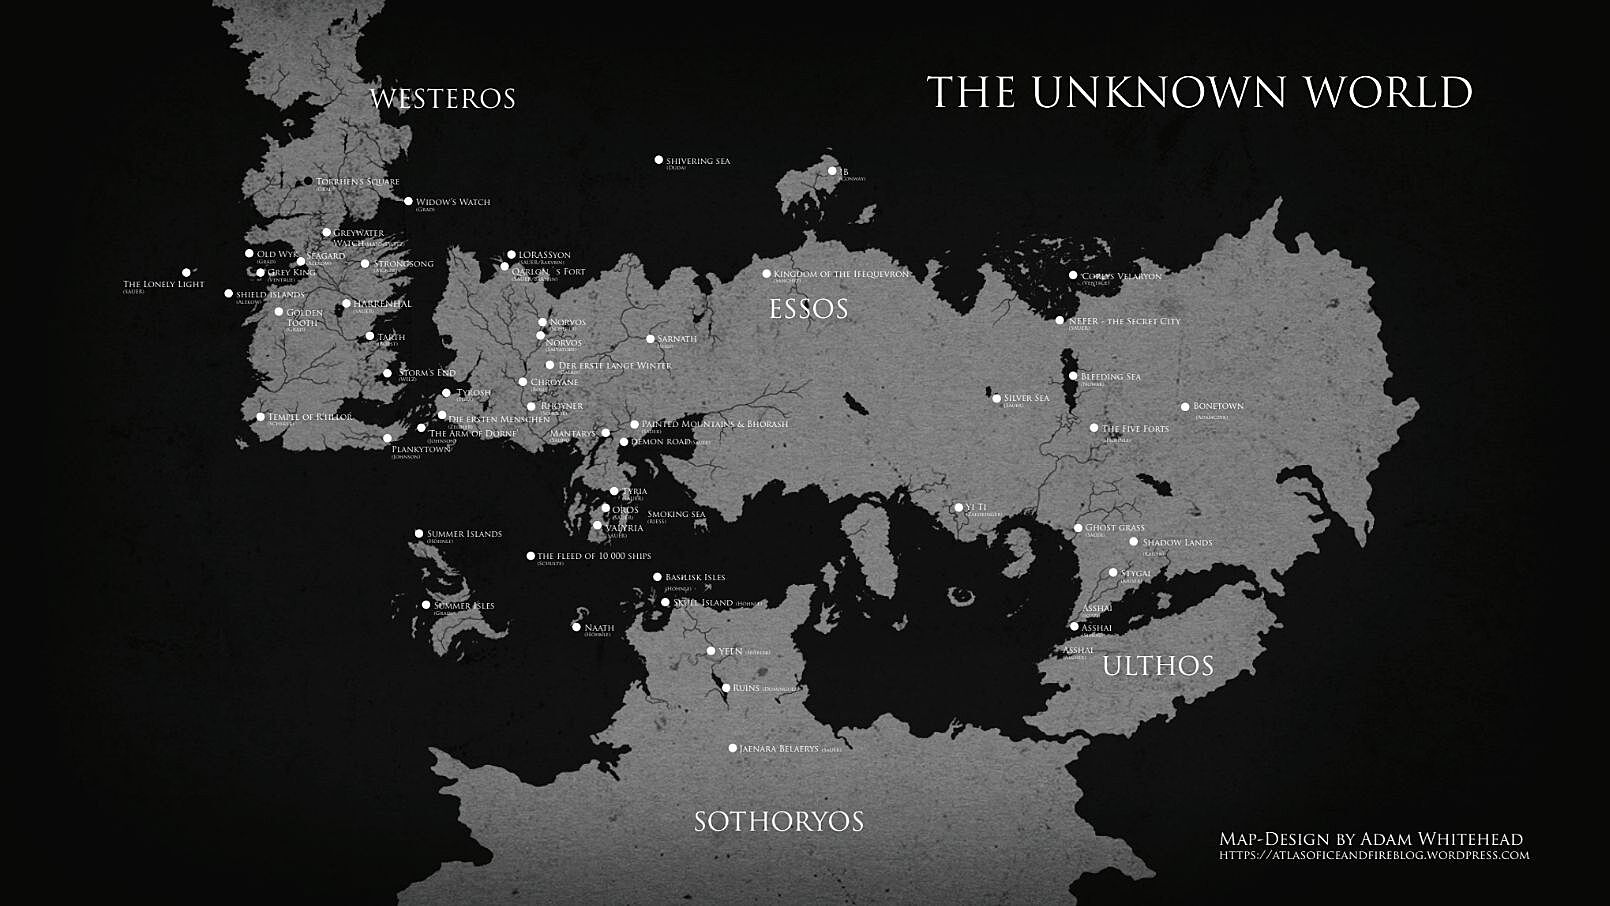 Game of Thrones concept artists show off the unseen World of Ice and Game Of Thrones Map Book on wentworth prison scotland map, outlander book map, king of thrones map, world map, harry potter book map, the mysterious island book map, king of thorns map, gameof thrones map, walking dead map, under the dome book map, dothraki sea map, the game book map,